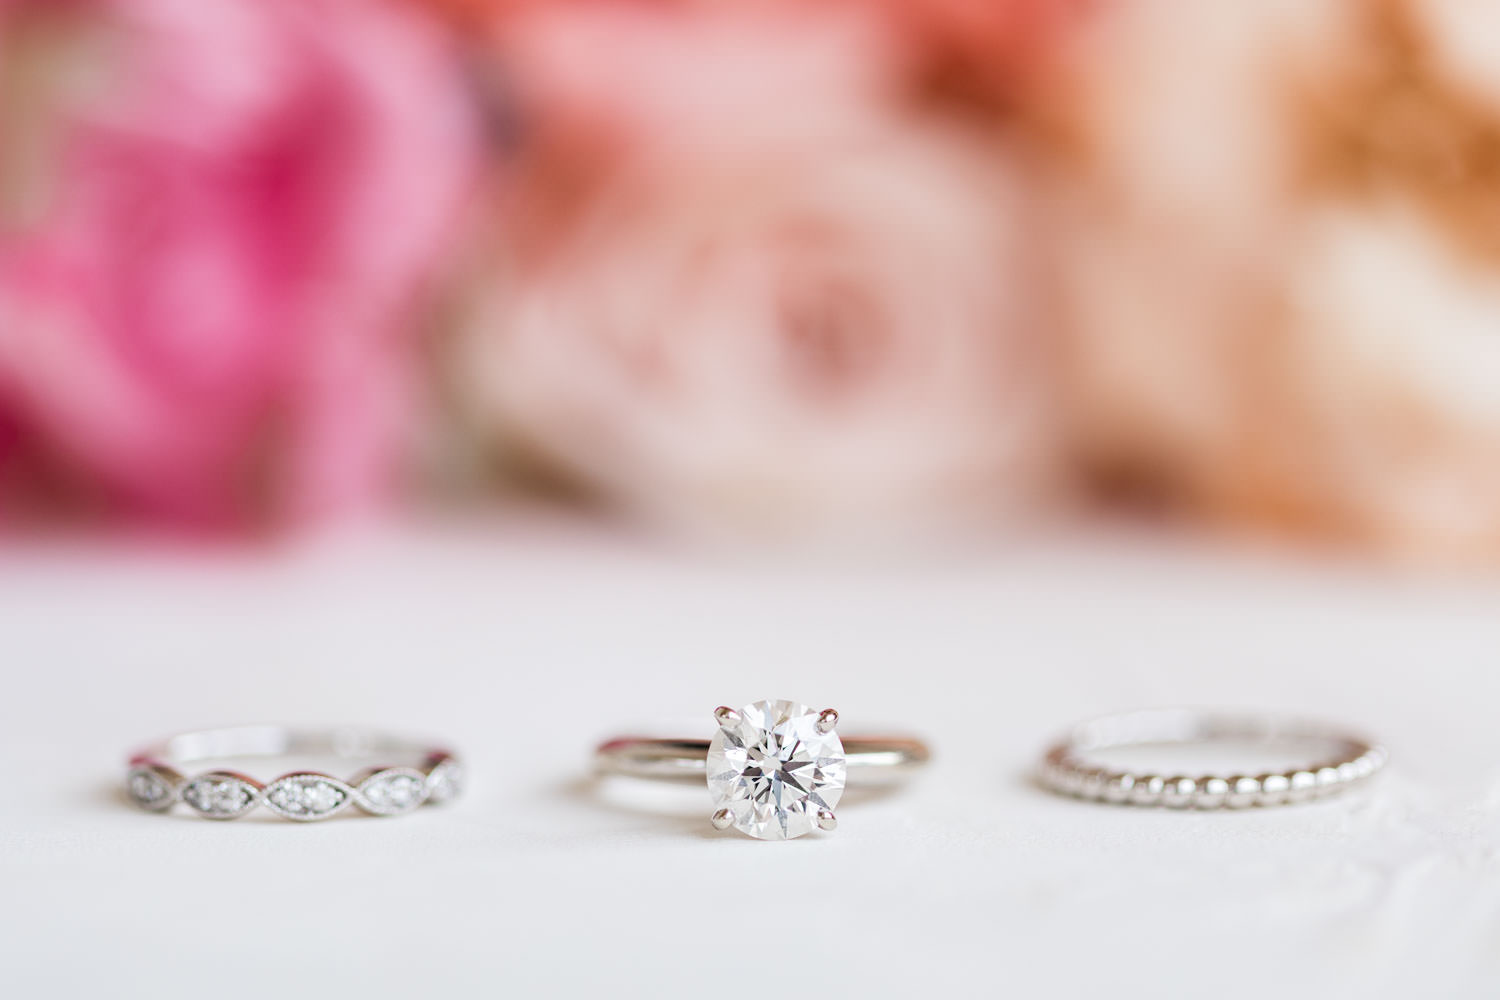 Wedding bands, engagement diamond solitaire ring with two bride wedding bands, La Quinta Resort Wedding in Palm Springs, Cavin Elizabeth Photography